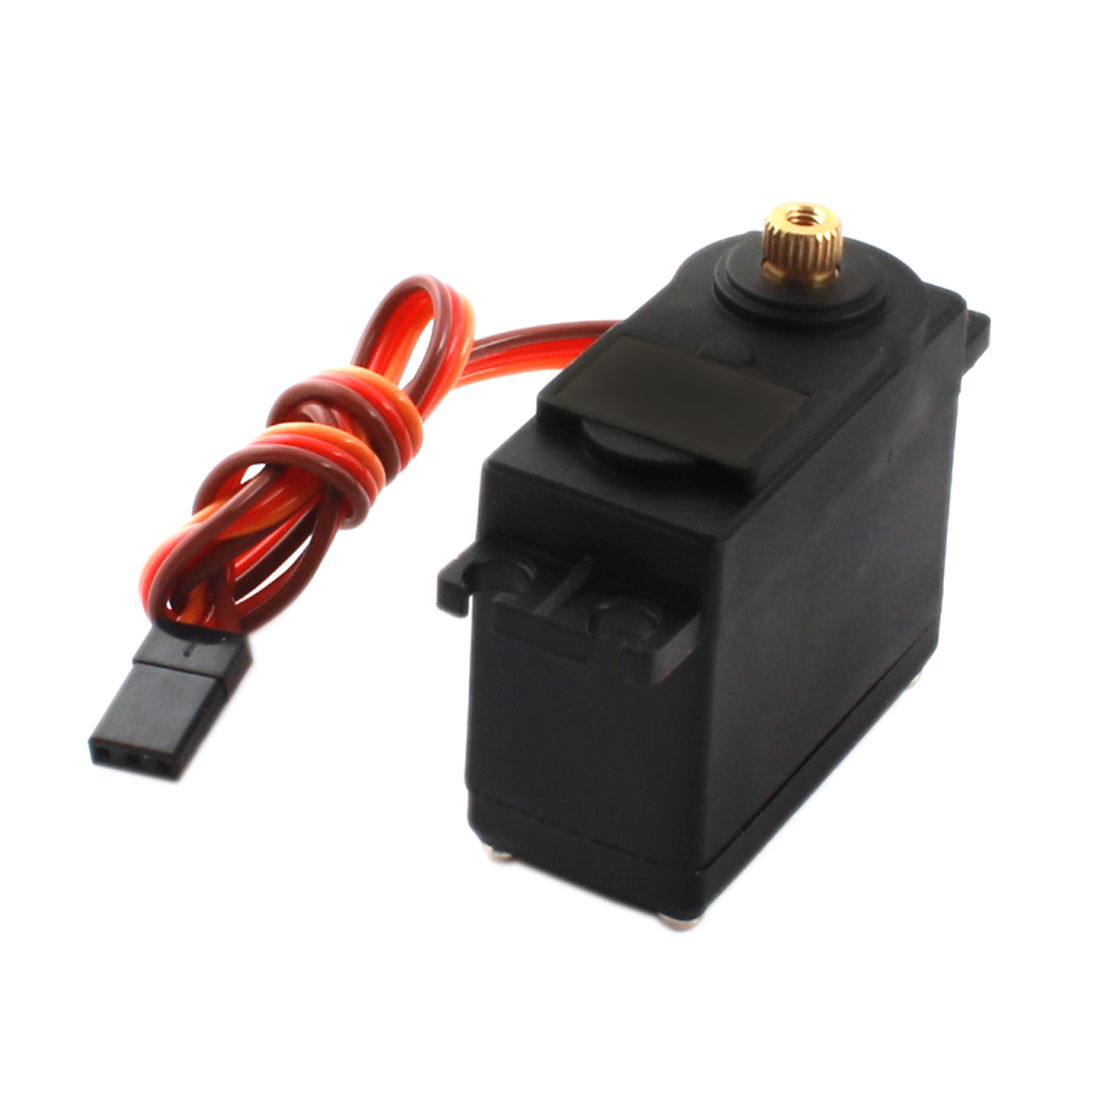 MG945 Digital Upgraded High Torque Metal Gear Servo for RC Helicopter Car Boat Model